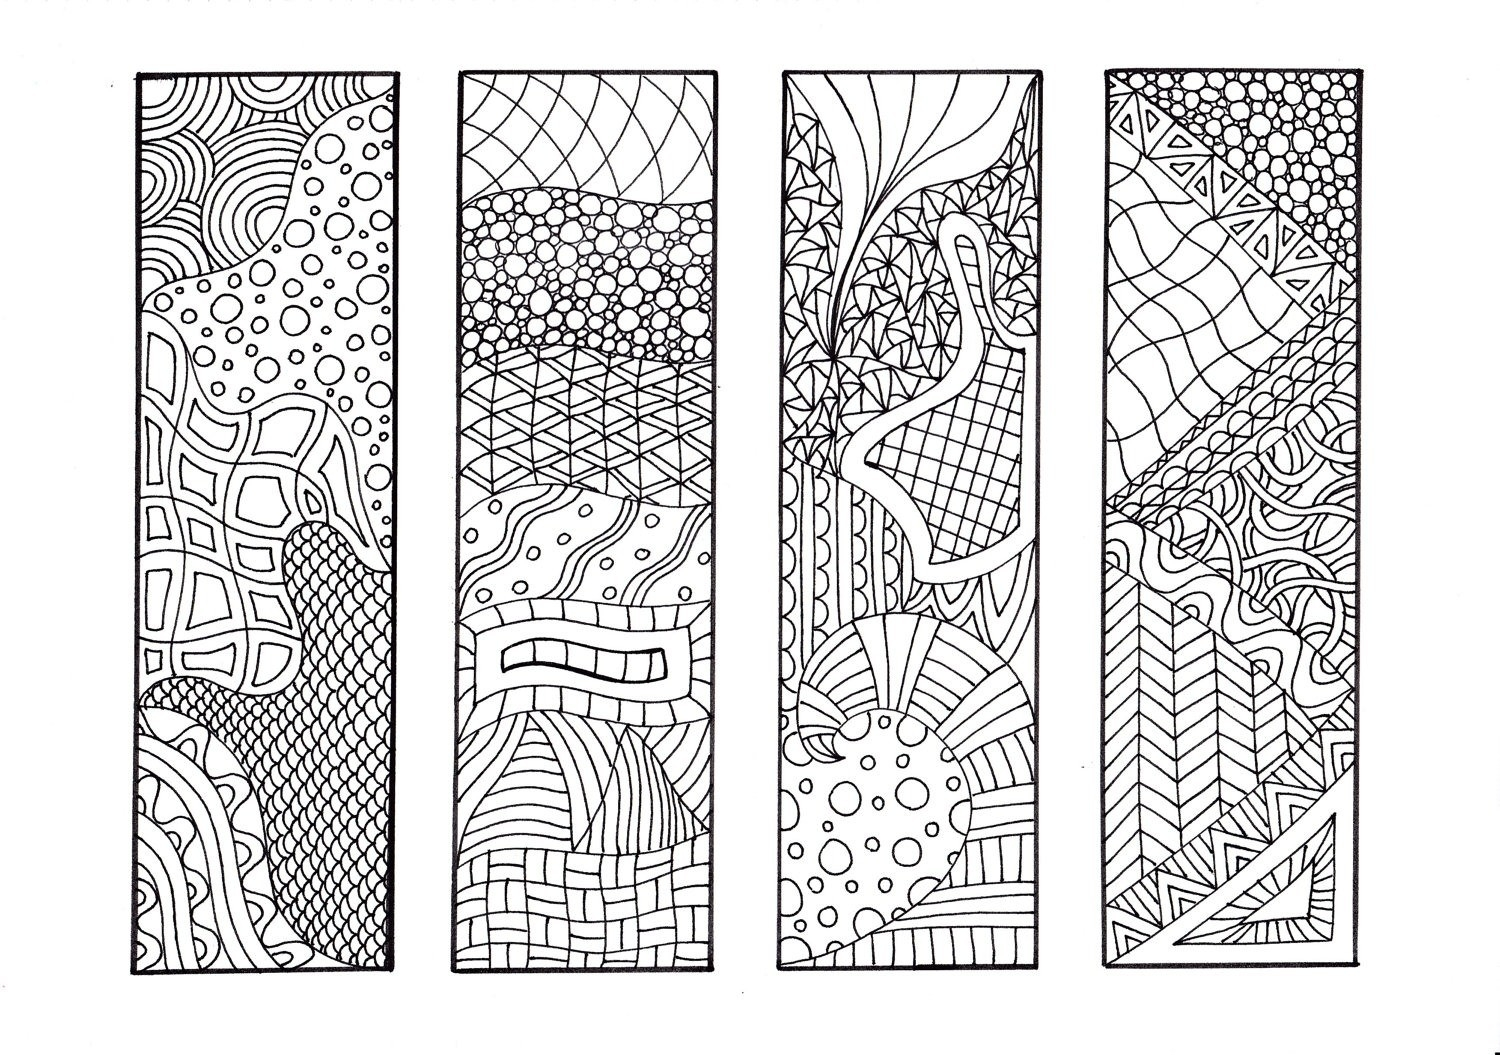 Cool Bookmarks To Print And Color | World Of Example with Cool Bookmarks To Print And Color 27220